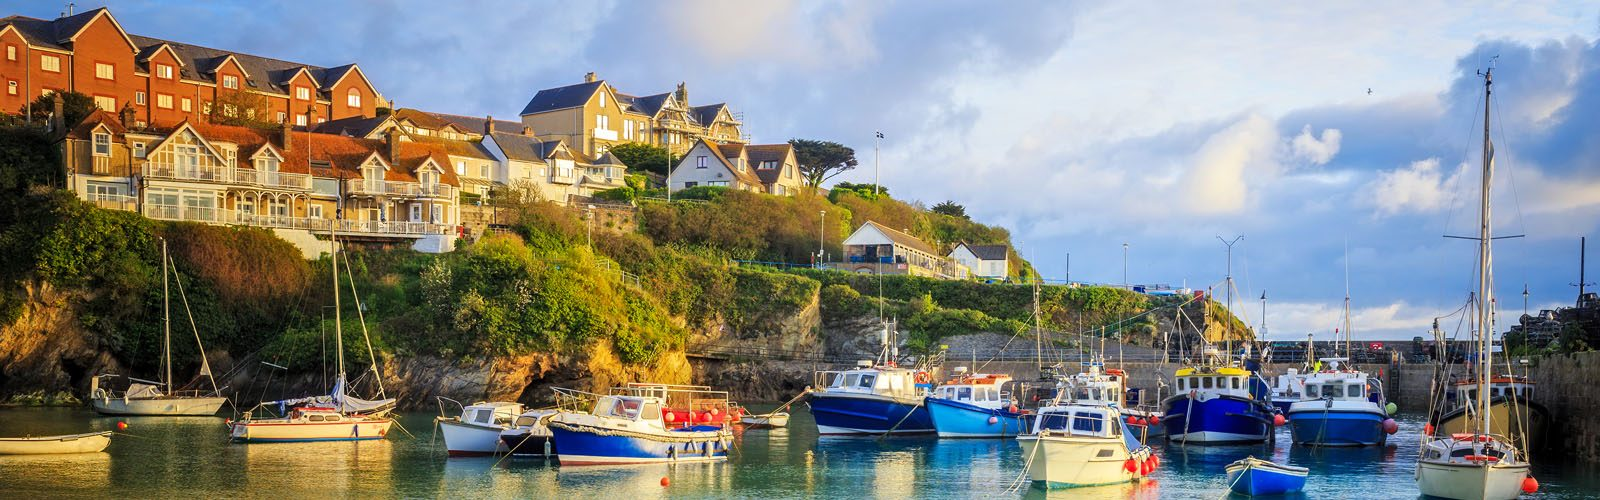 Fishing boats in the harbour at Newquay on the Cornwall.